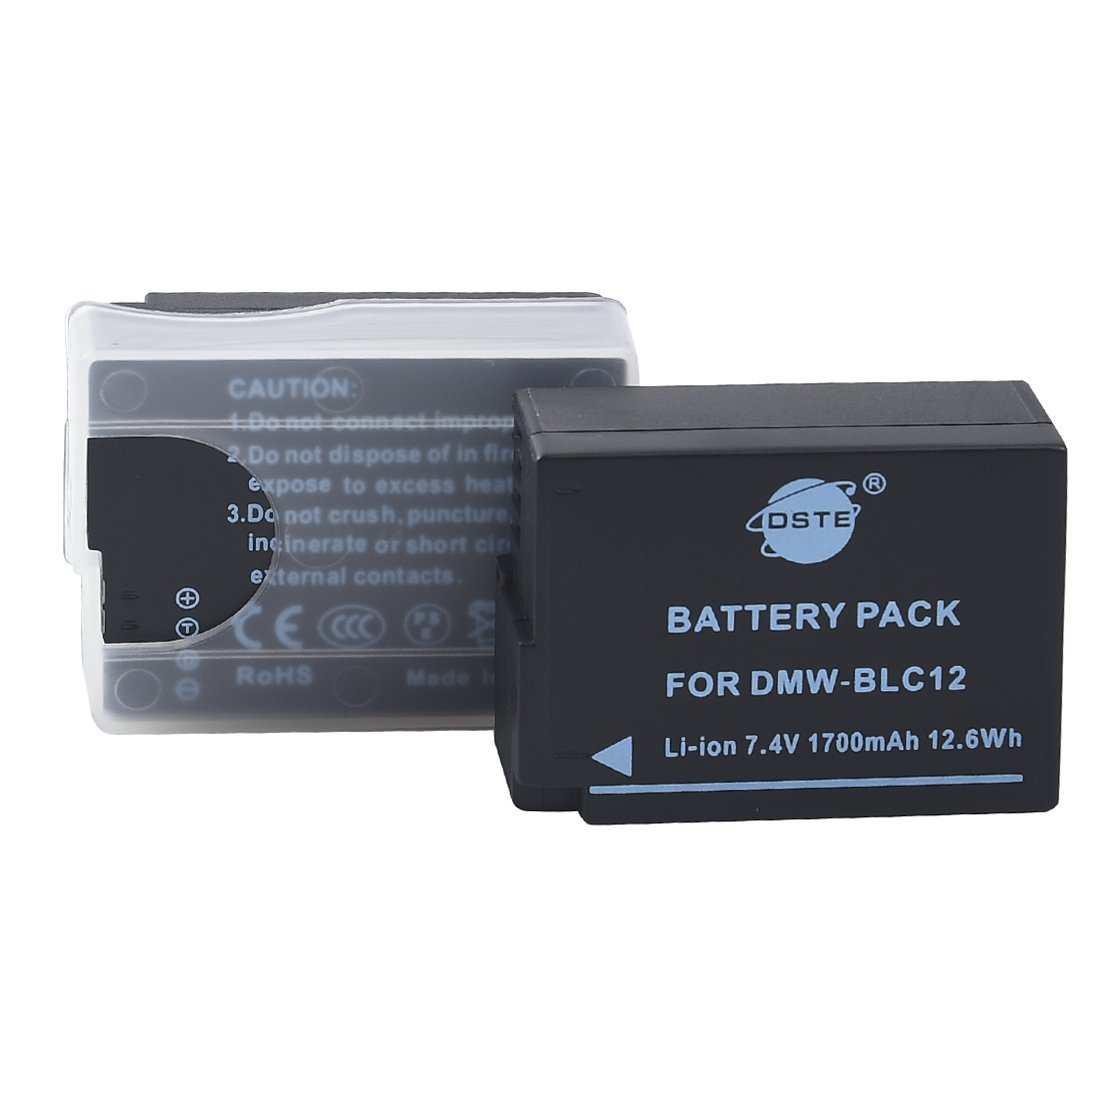 DSTE 2x DMW-BLC12 Replacement Li-ion Battery for Panasonic Lumix DMC-G5 G6 G7 GH2 GX8 FZ200 DMC-FZ2500 DMC-FZ2000 Leica Q Camera as DMW-BLC12E BP-DC12E